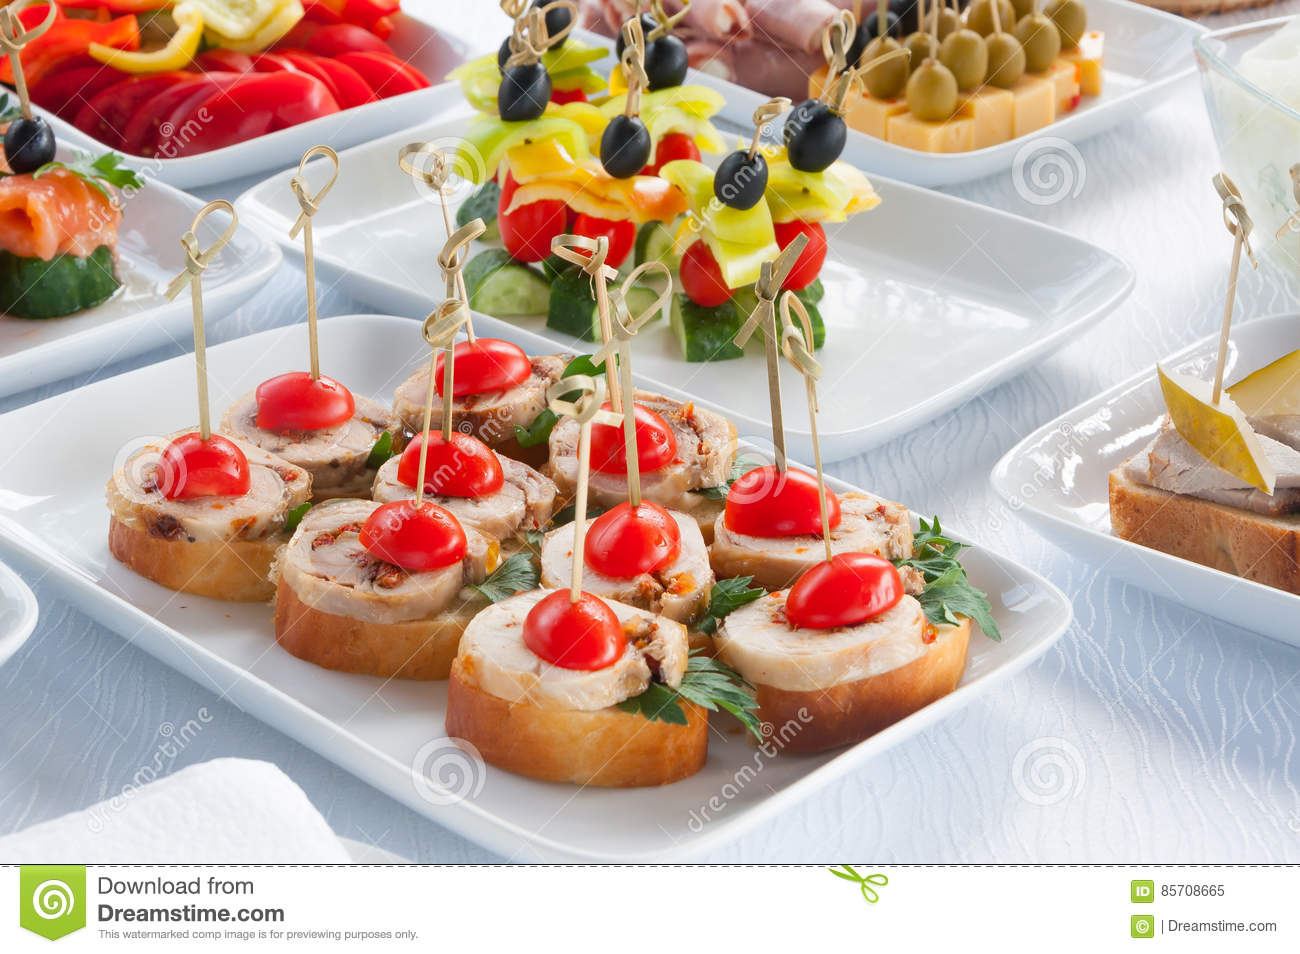 Canapés Wraps Canapes On The White Plates Stock Image Image Of Catering